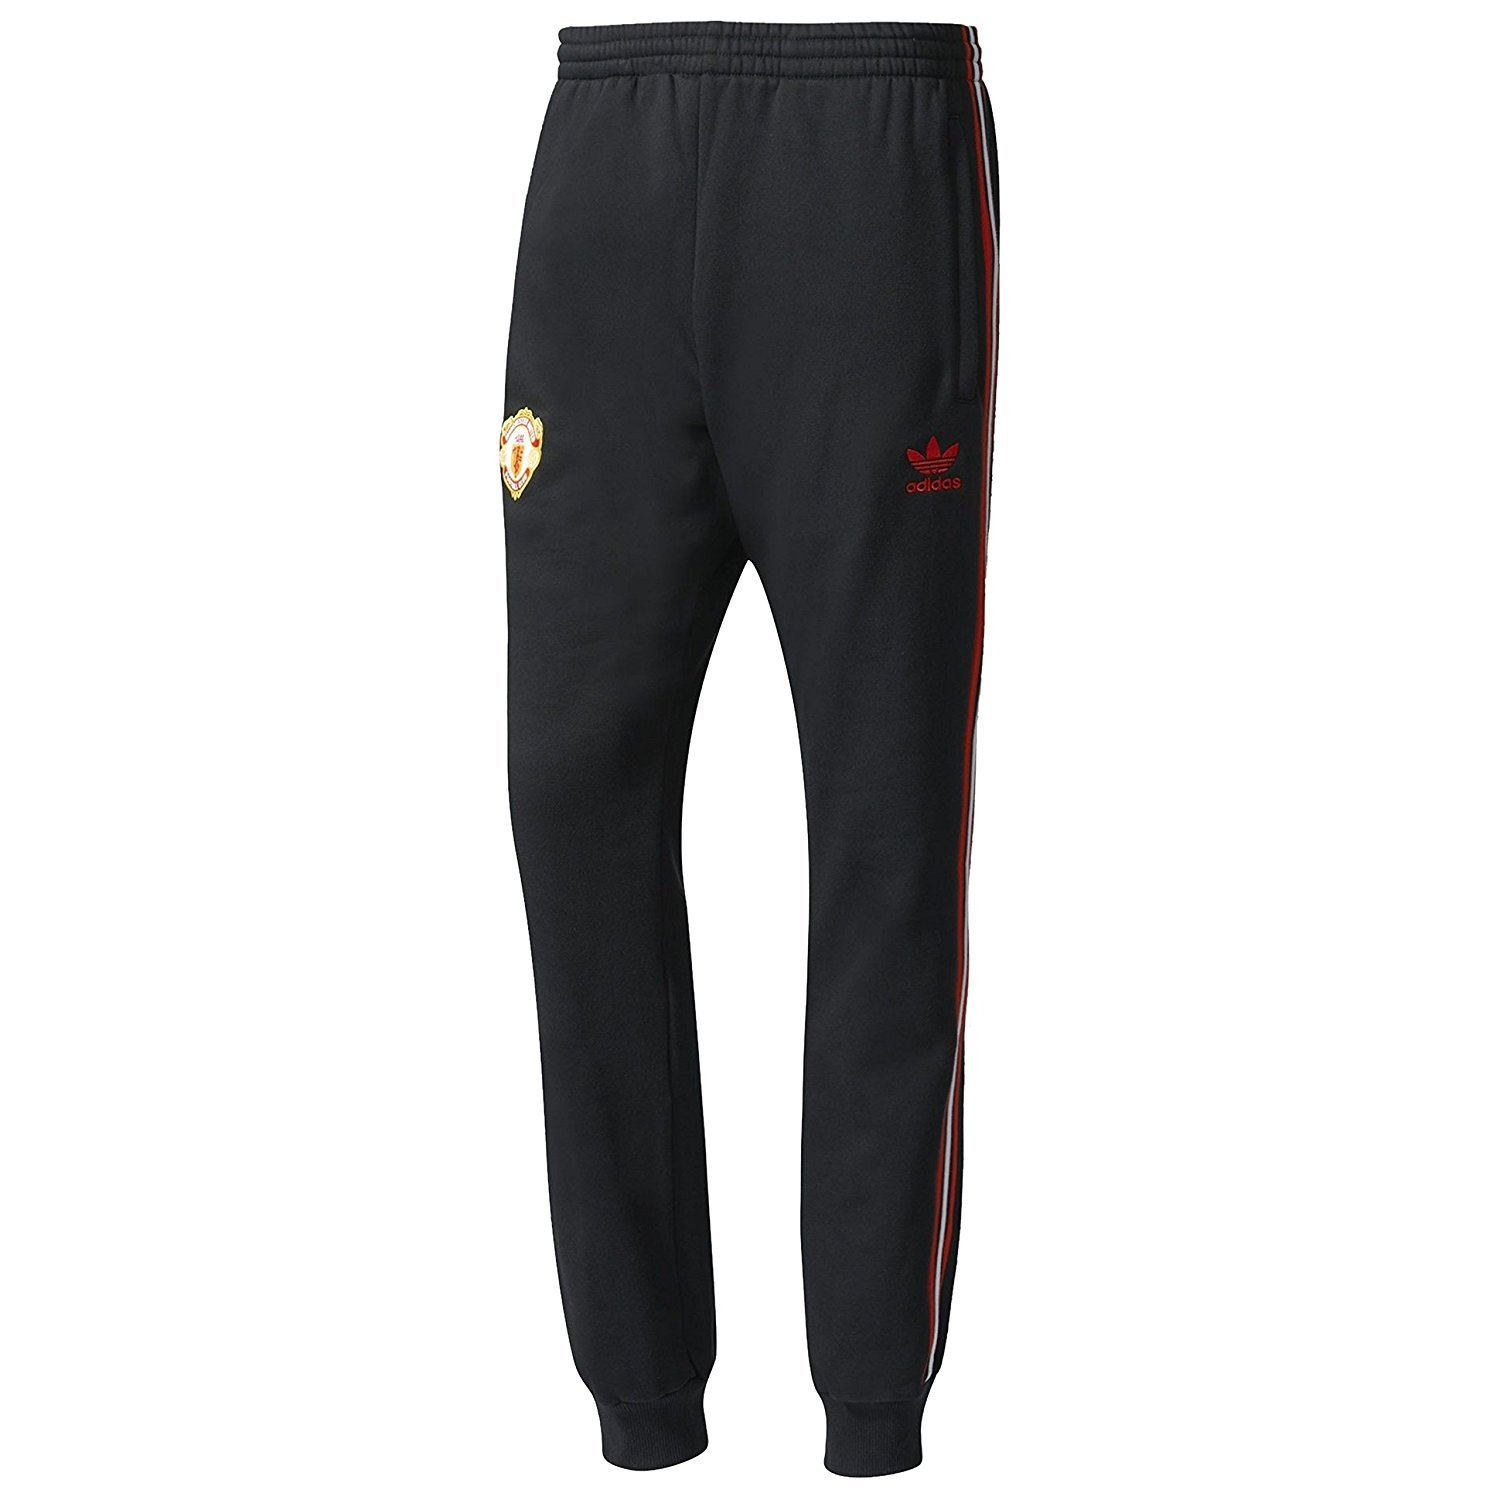 b6505599f43 adidas Men's Manchester United Track Pants (X-Large) at Amazon Men's  Clothing store: